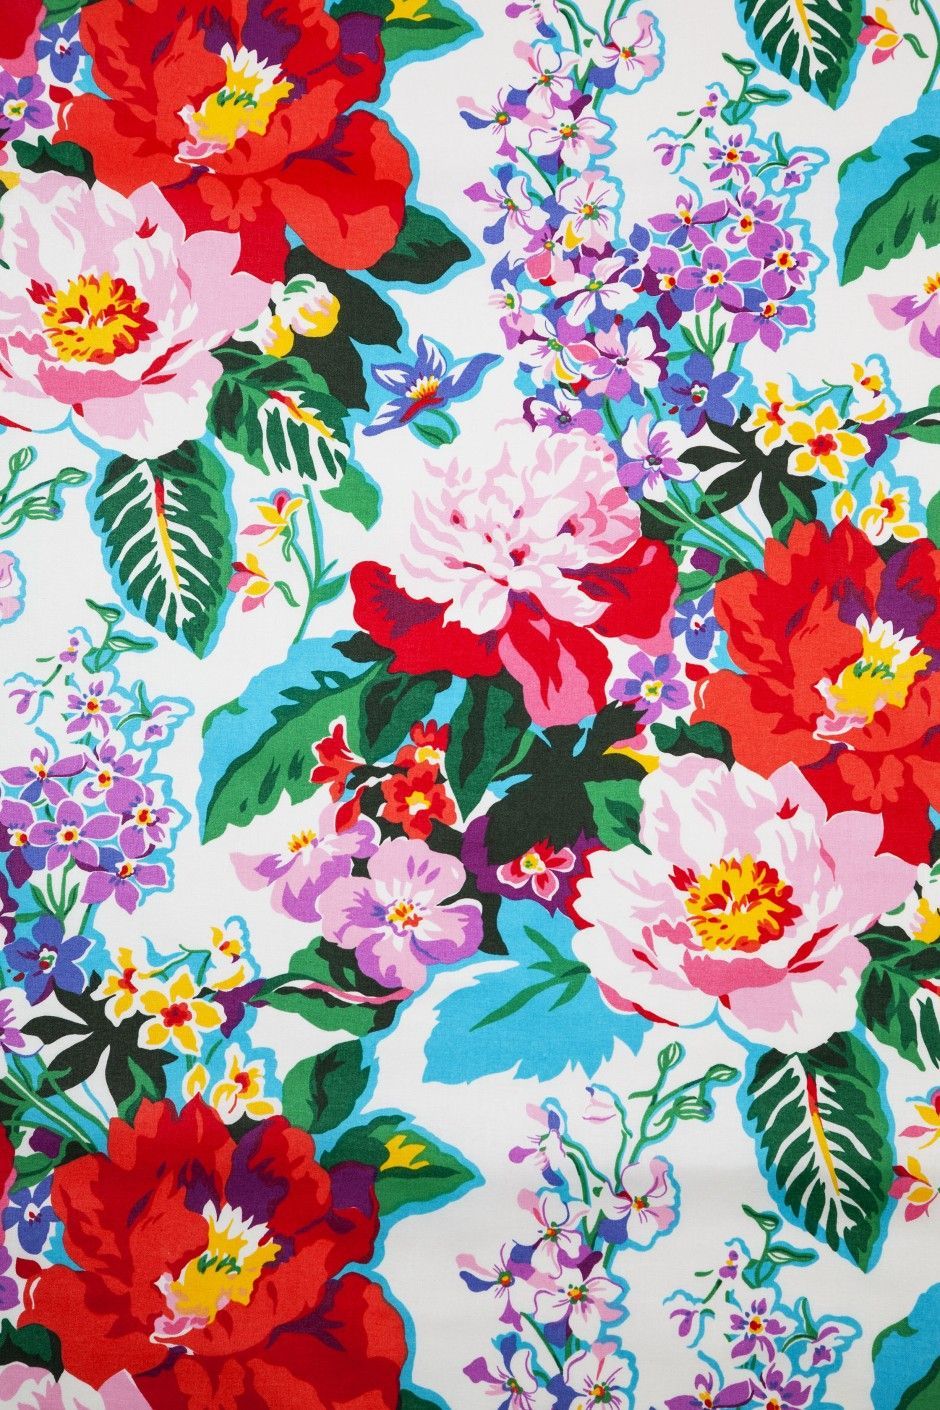 Greenbrier - Dorothy Draper Fabrics and Wallcoverings | floral.floral.floral. | Print wallpaper ...